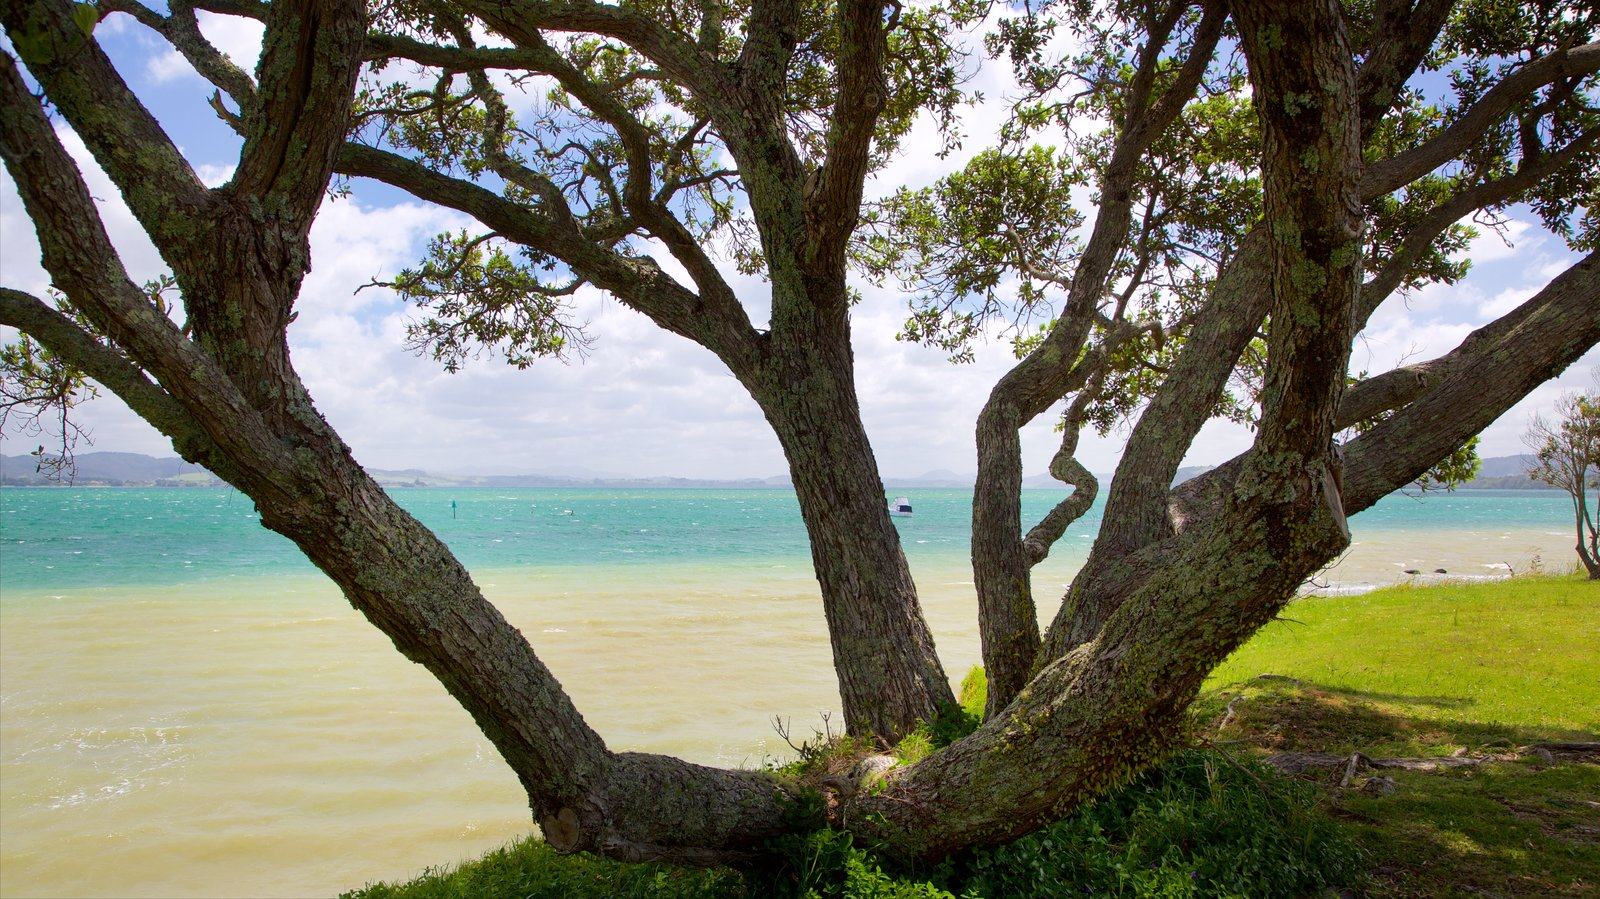 Whangarei Heads which includes general coastal views and a park